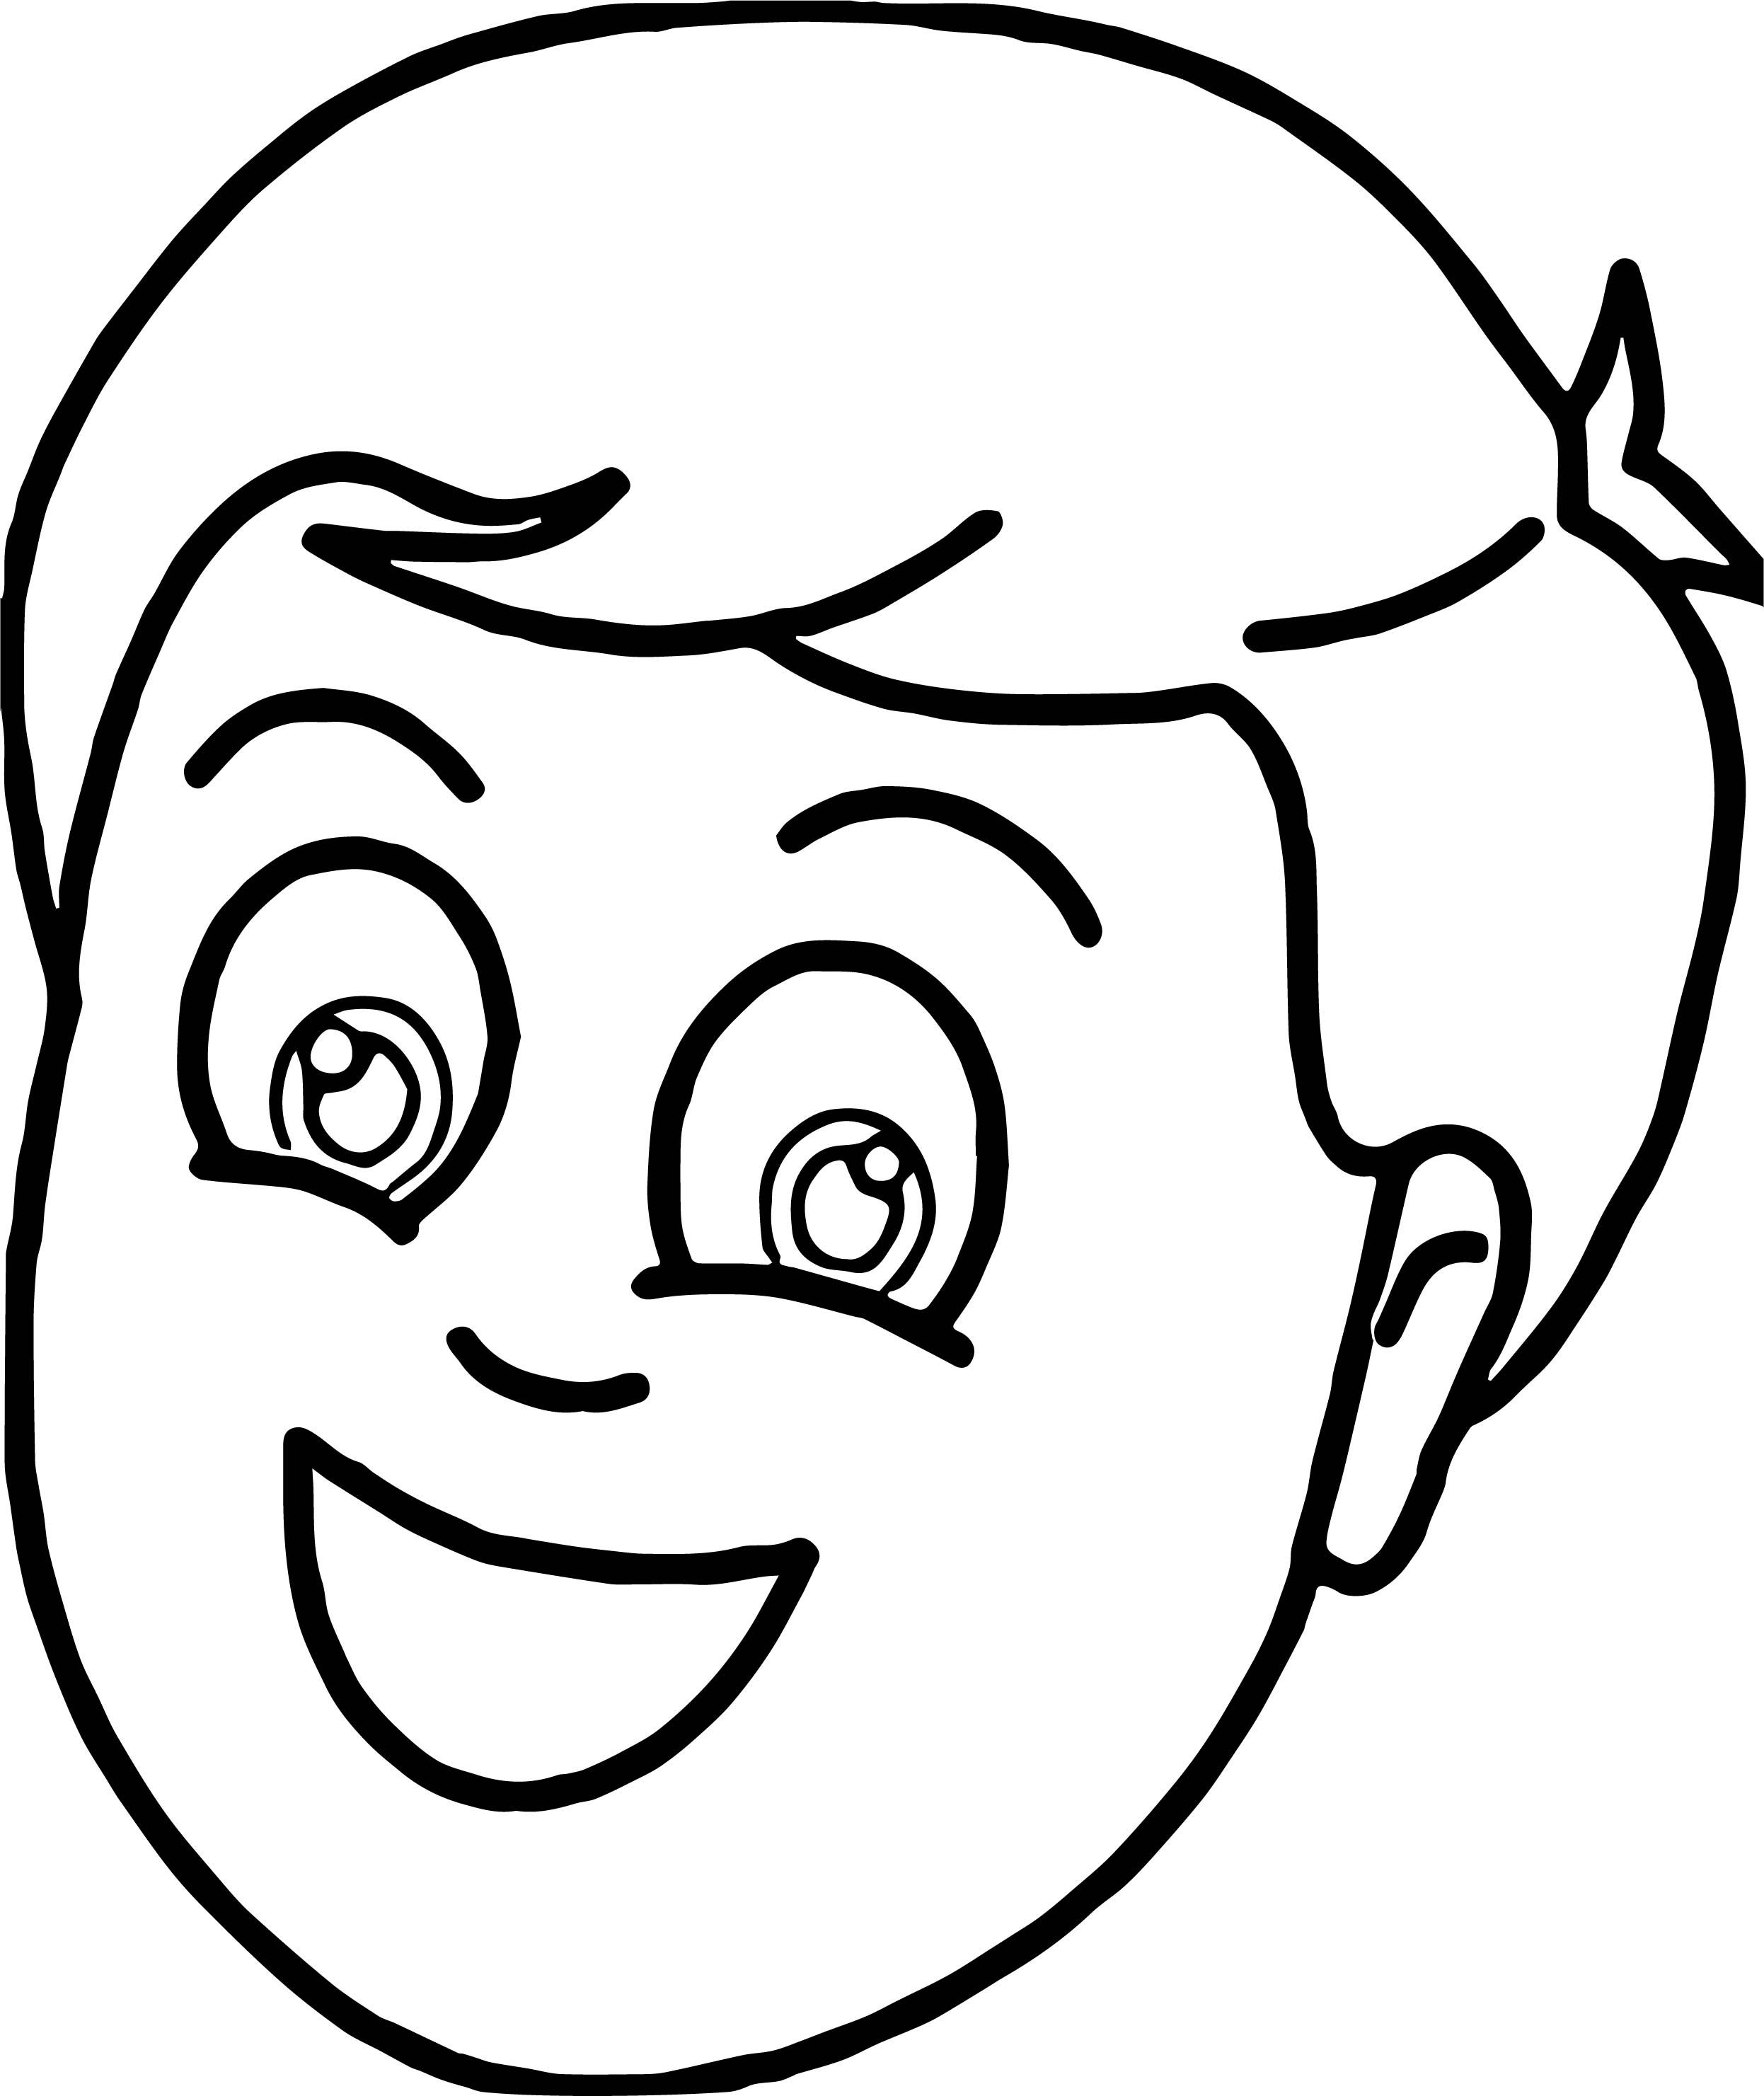 Awesome Tn Boy Smiling Face Coloring Page Coloring Pages For